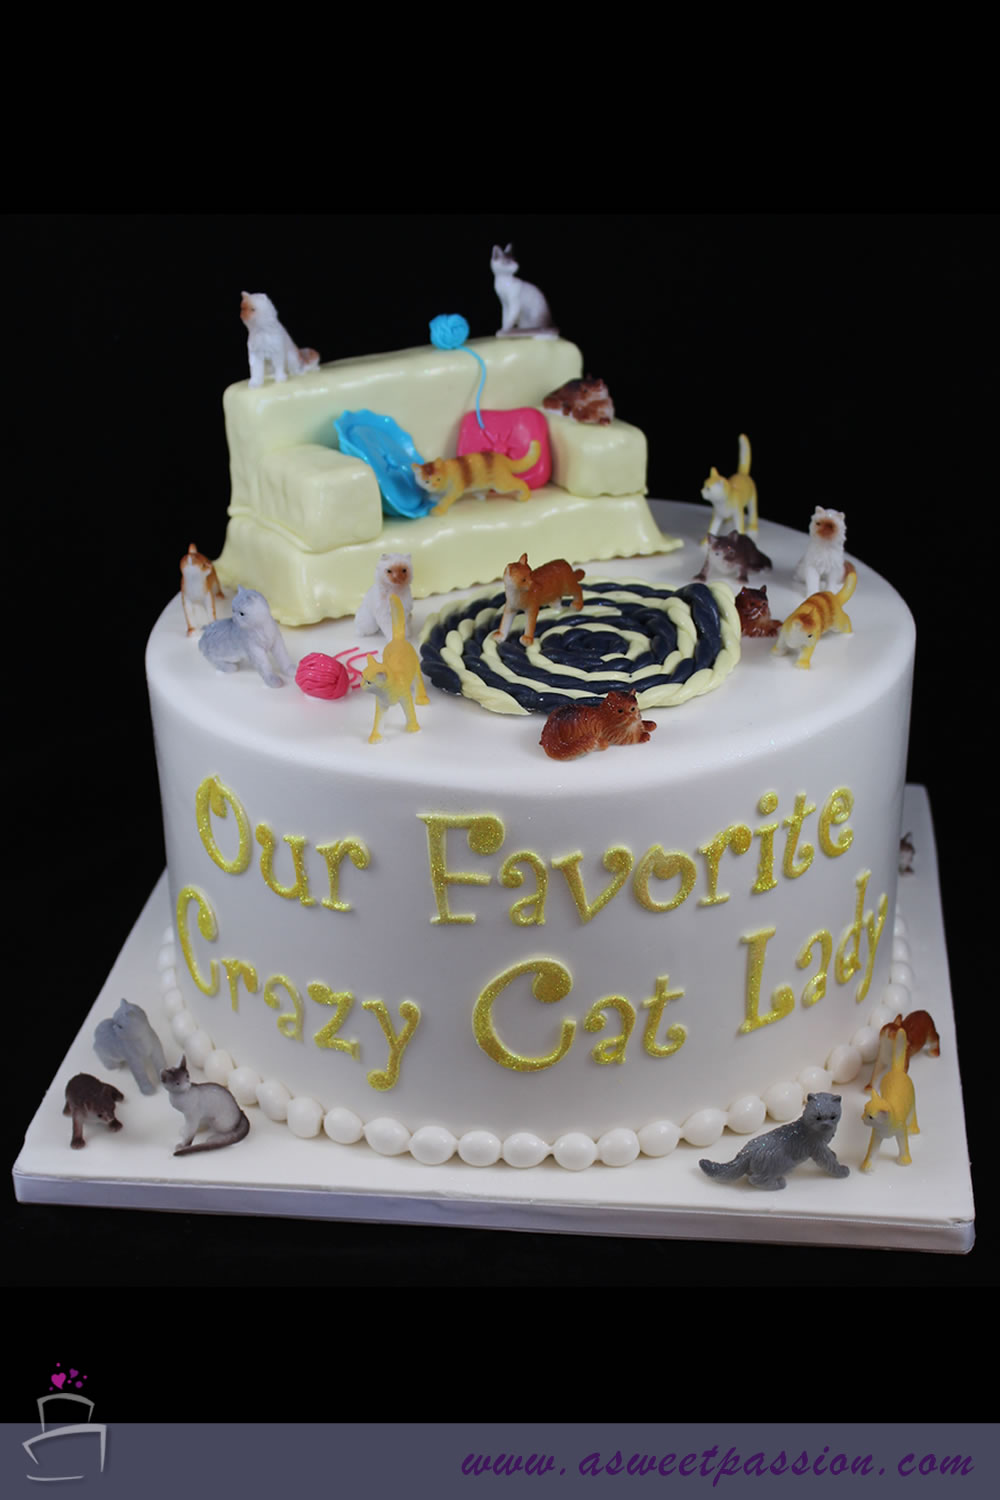 Crazy Cat Lady Cake Sweet Passion Cakery